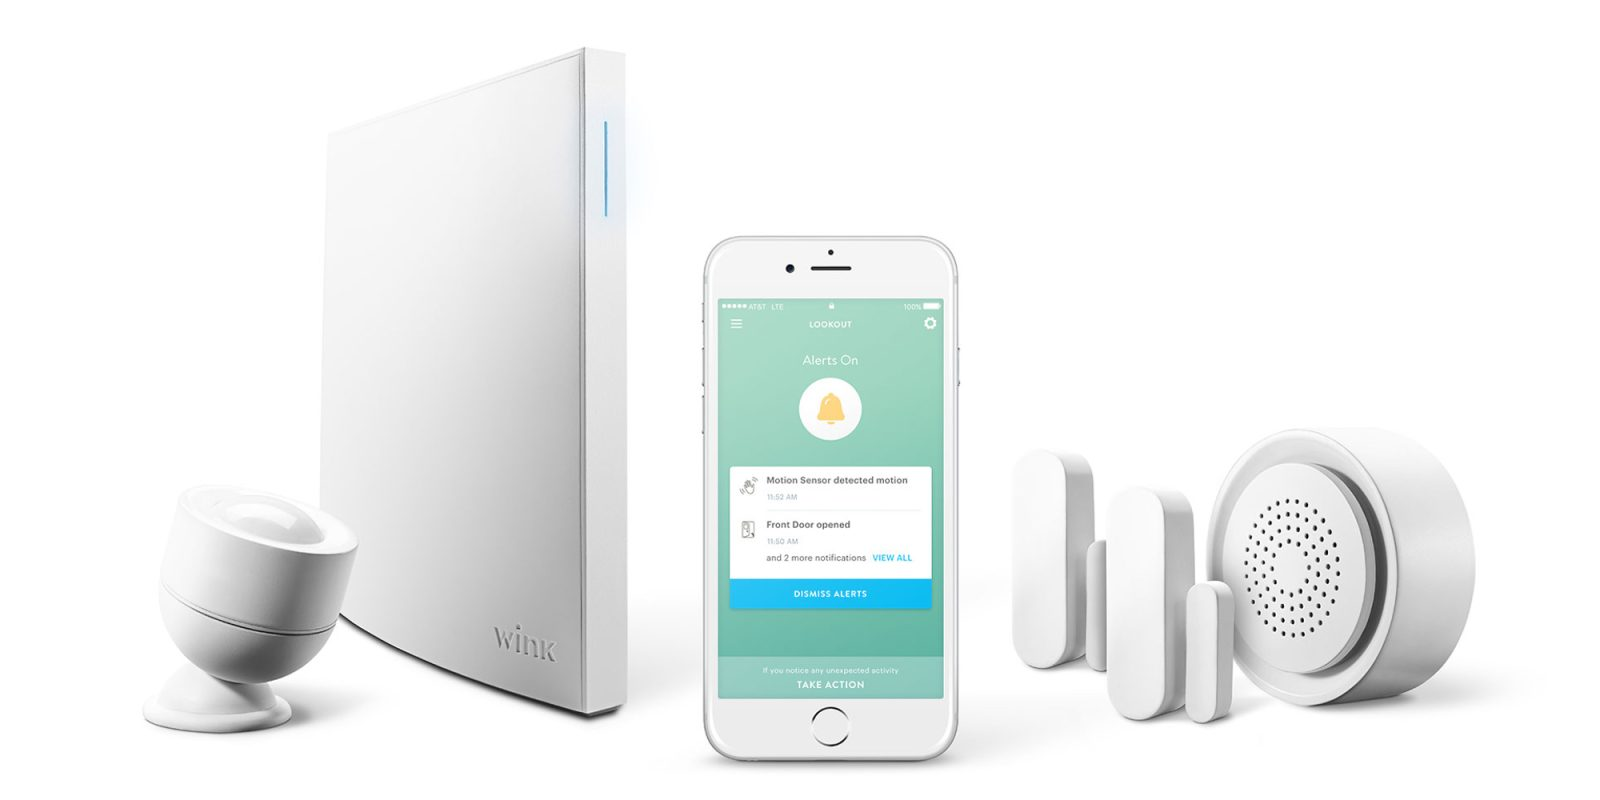 Diy Home Security Devices Wink Unveils Lookout Its New Competitively Priced Diy